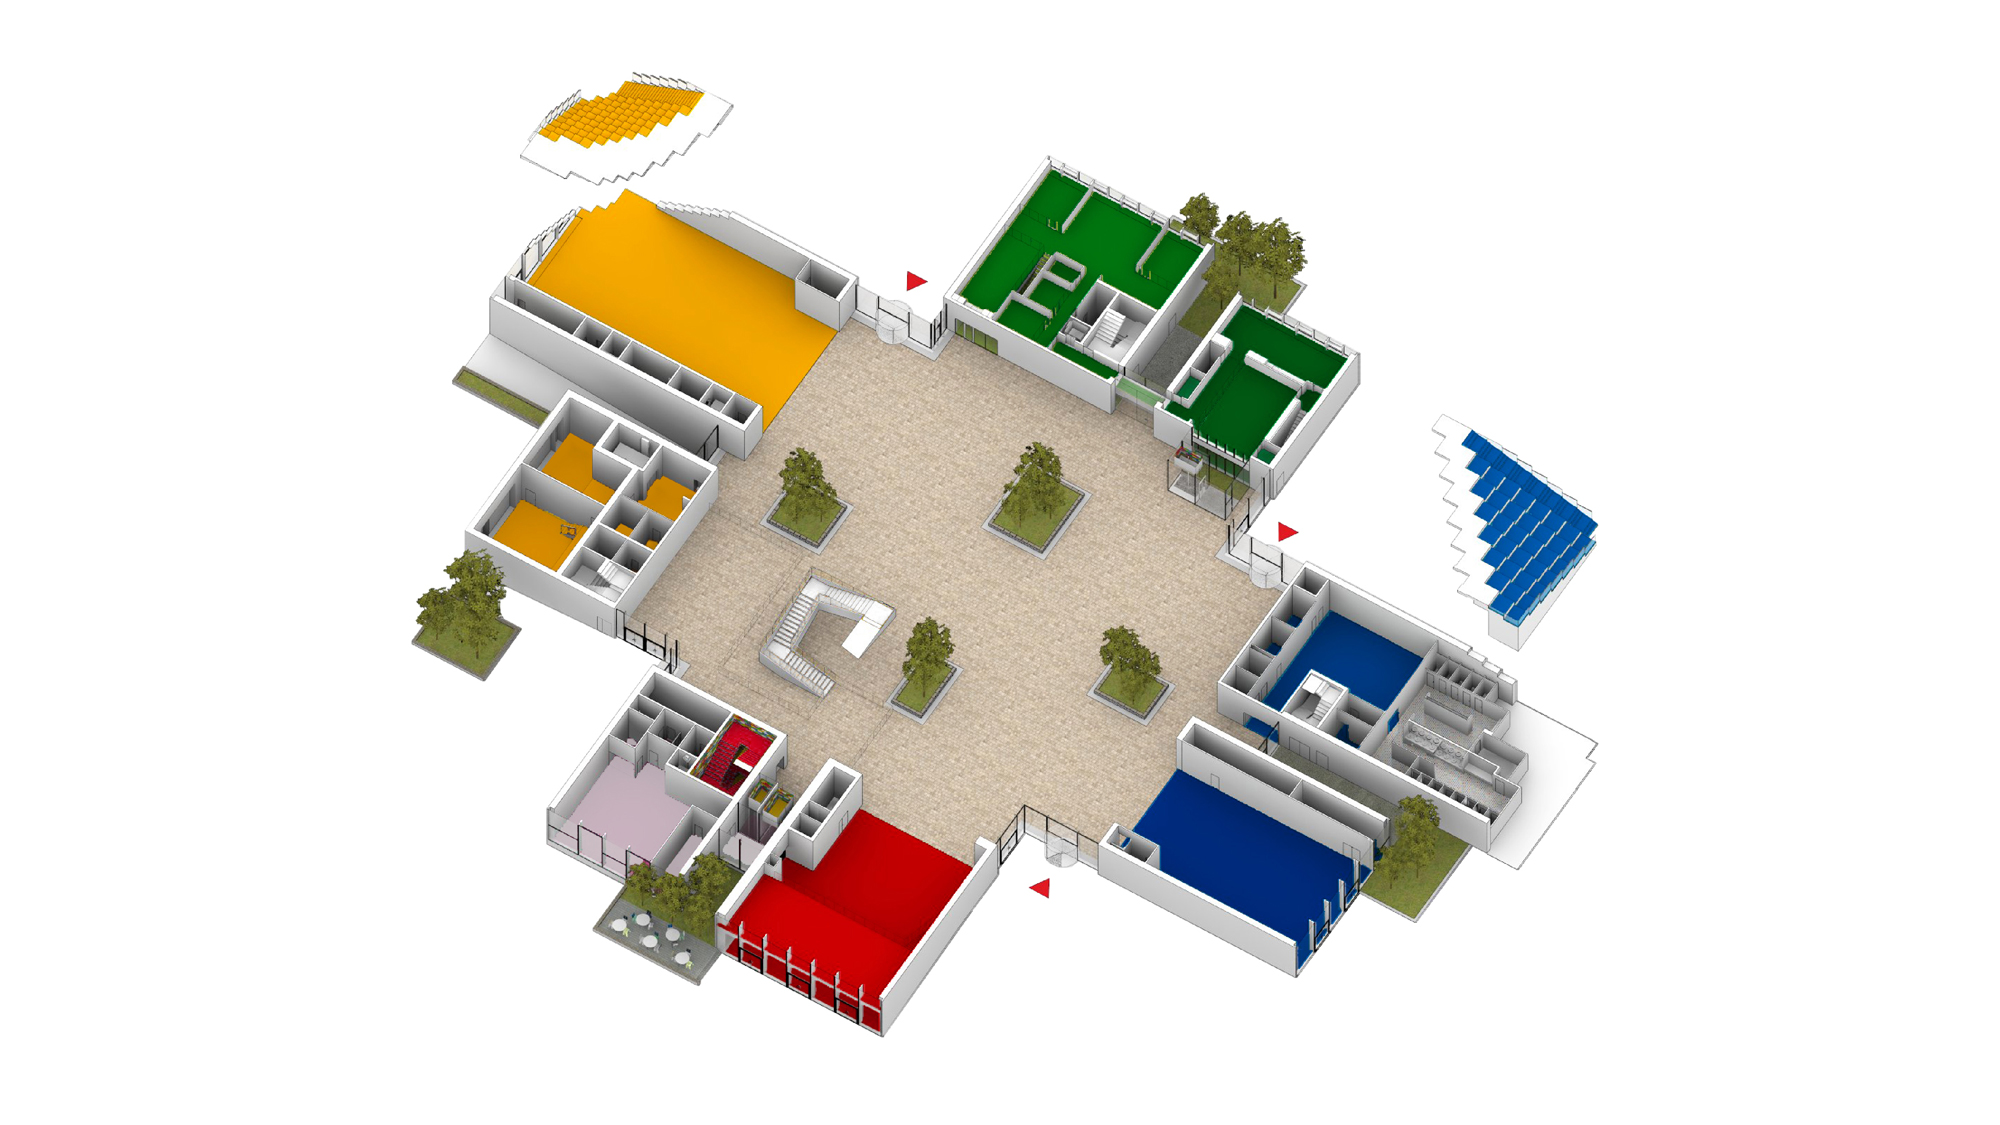 Ground level of the LEGO house by BIG - Bjarke Ingles Group